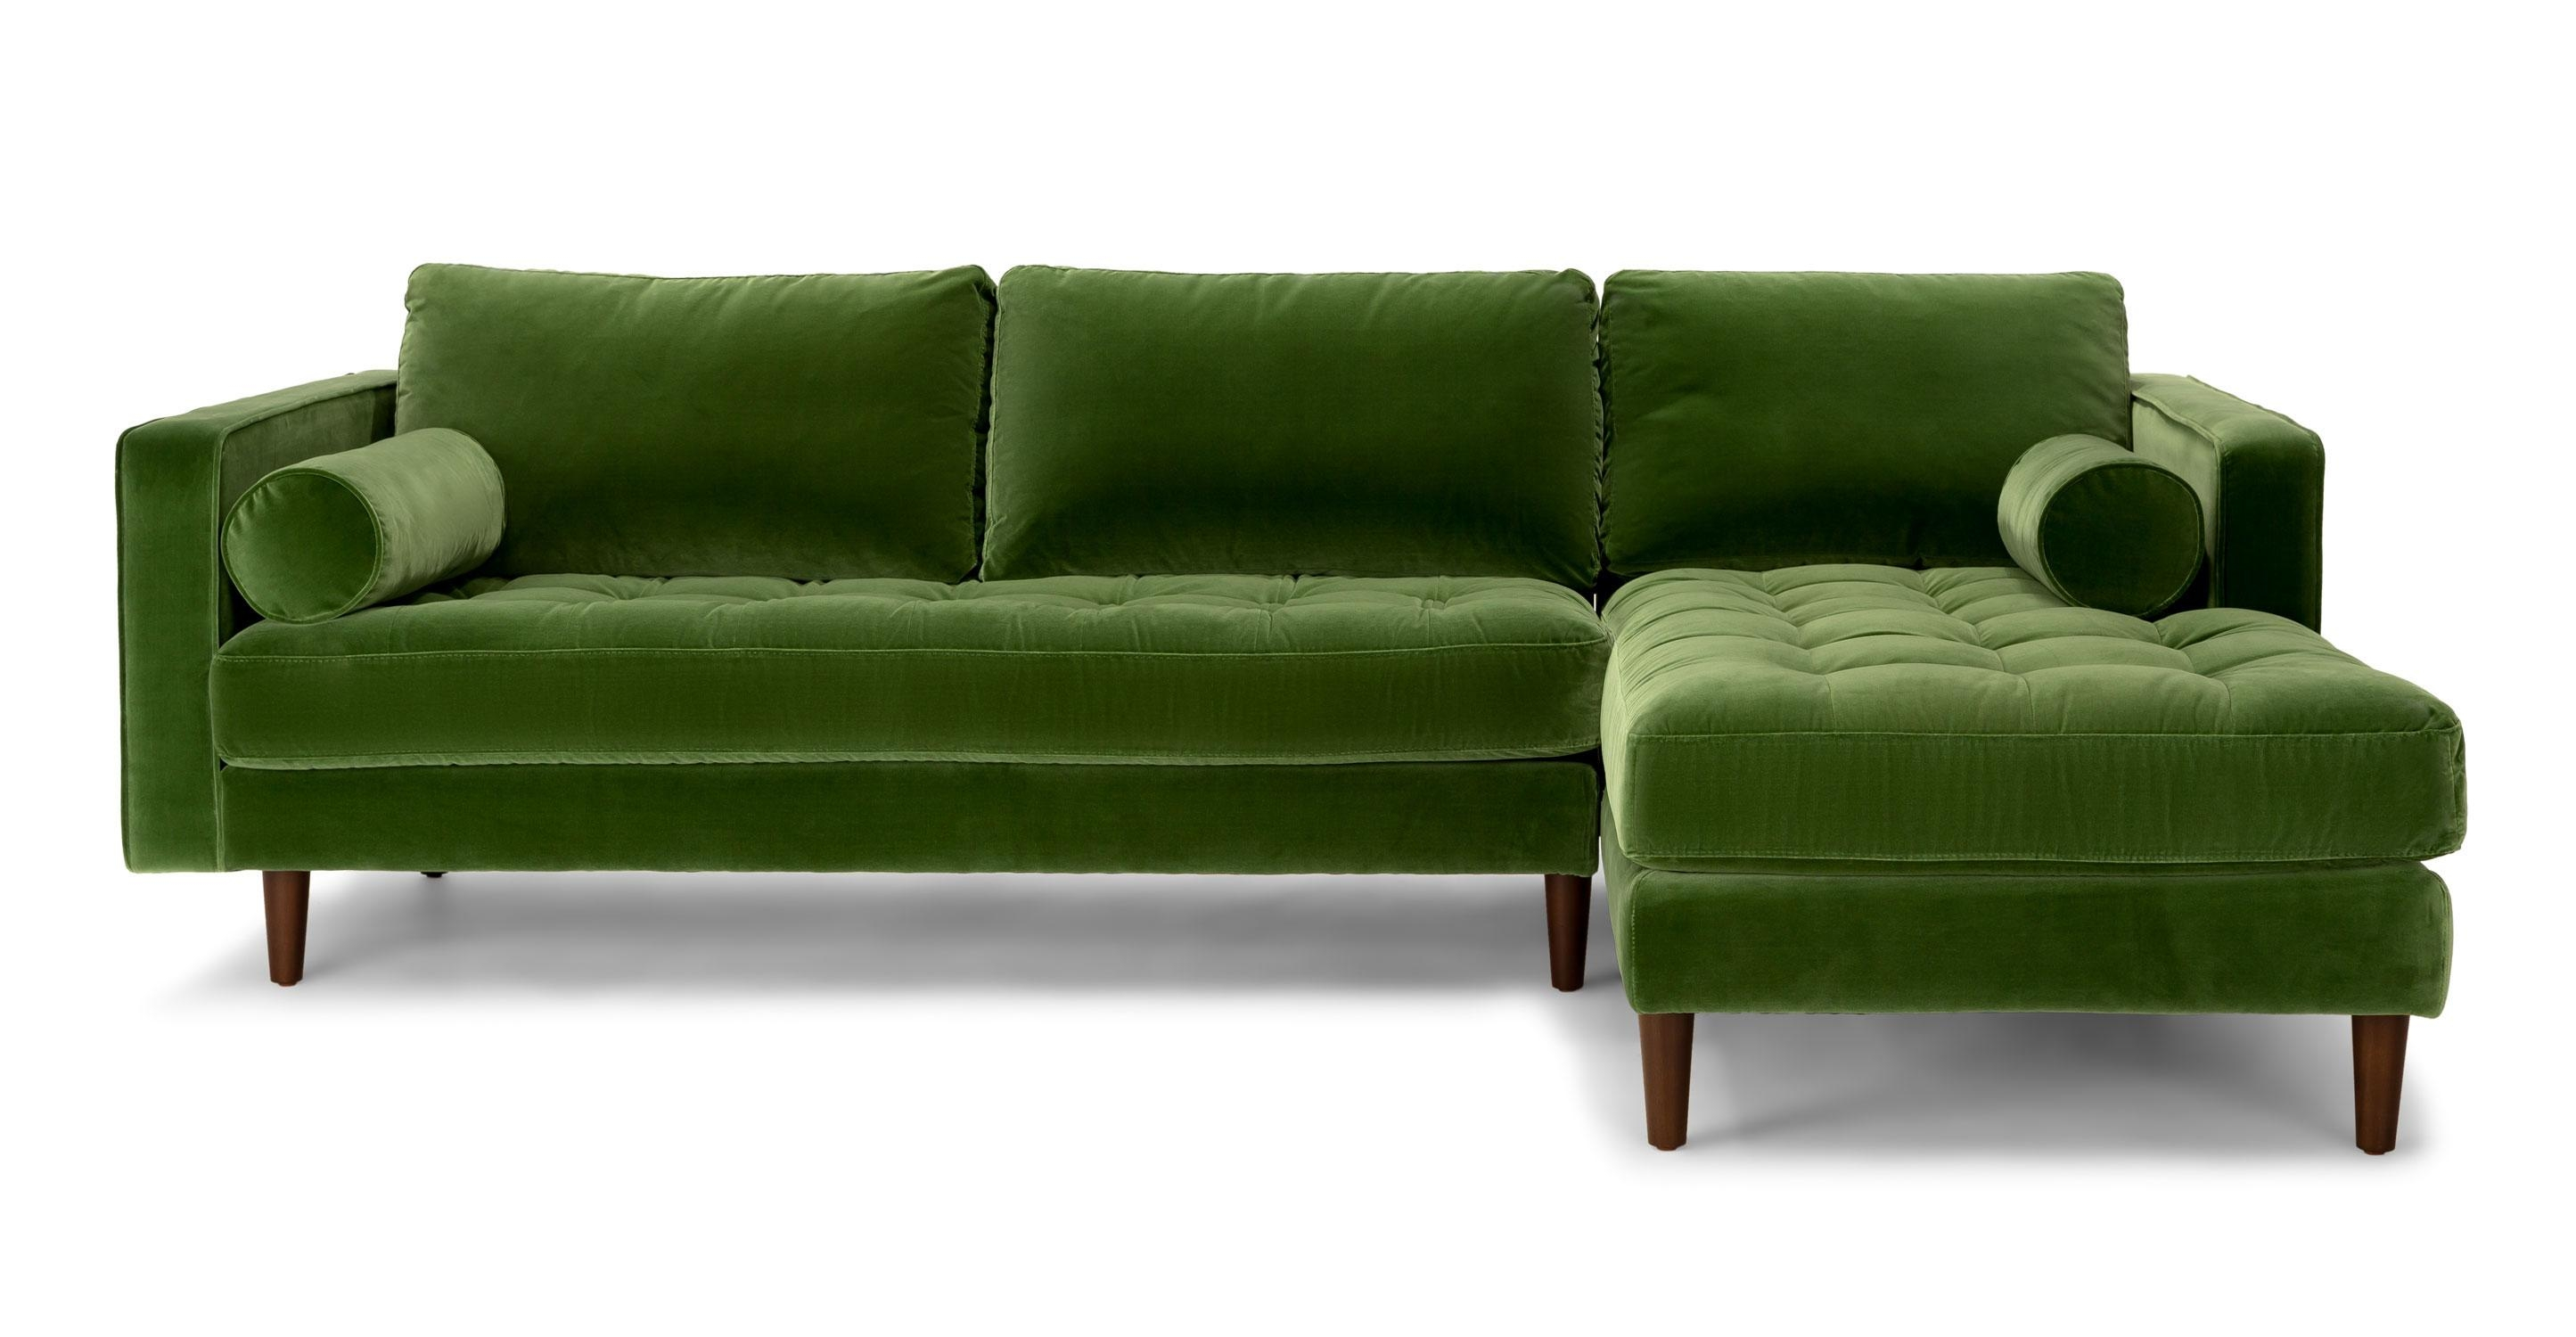 Decorating: Fill Your Living Room With Elegant Ashley Furniture Inside Green Leather Sectional Sofas (Image 3 of 20)